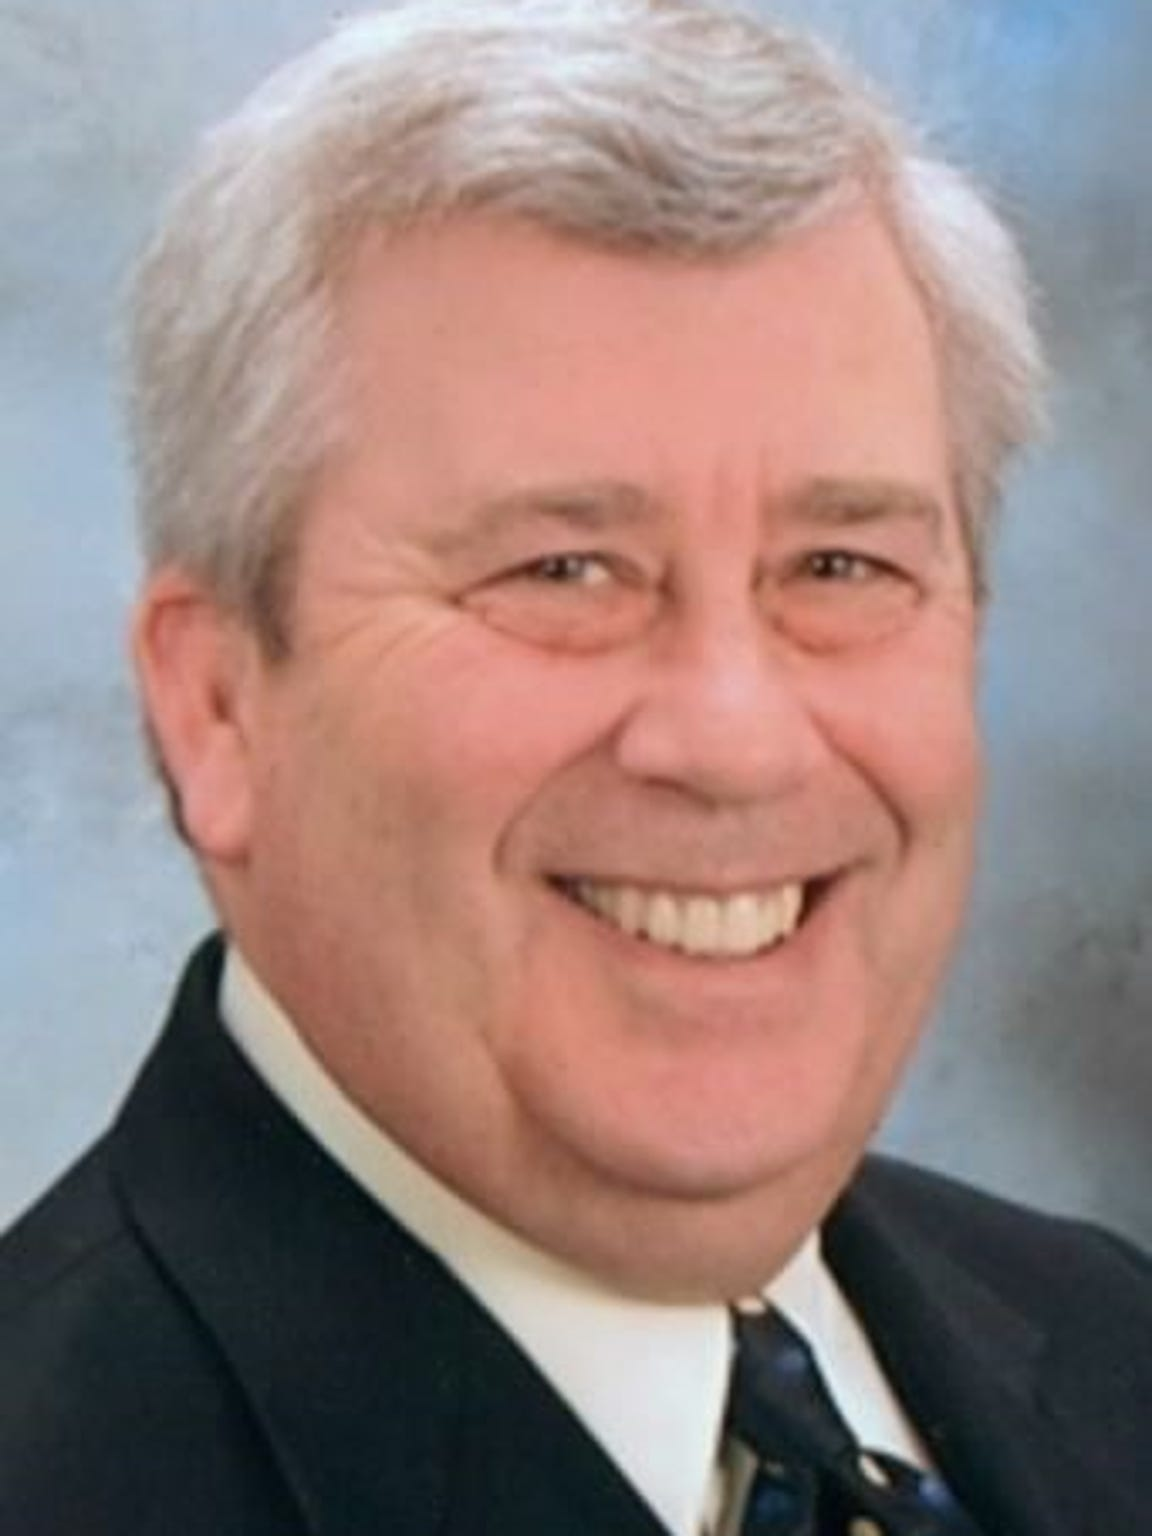 York County District Attorney Tom Kearney is retiring after two terms.